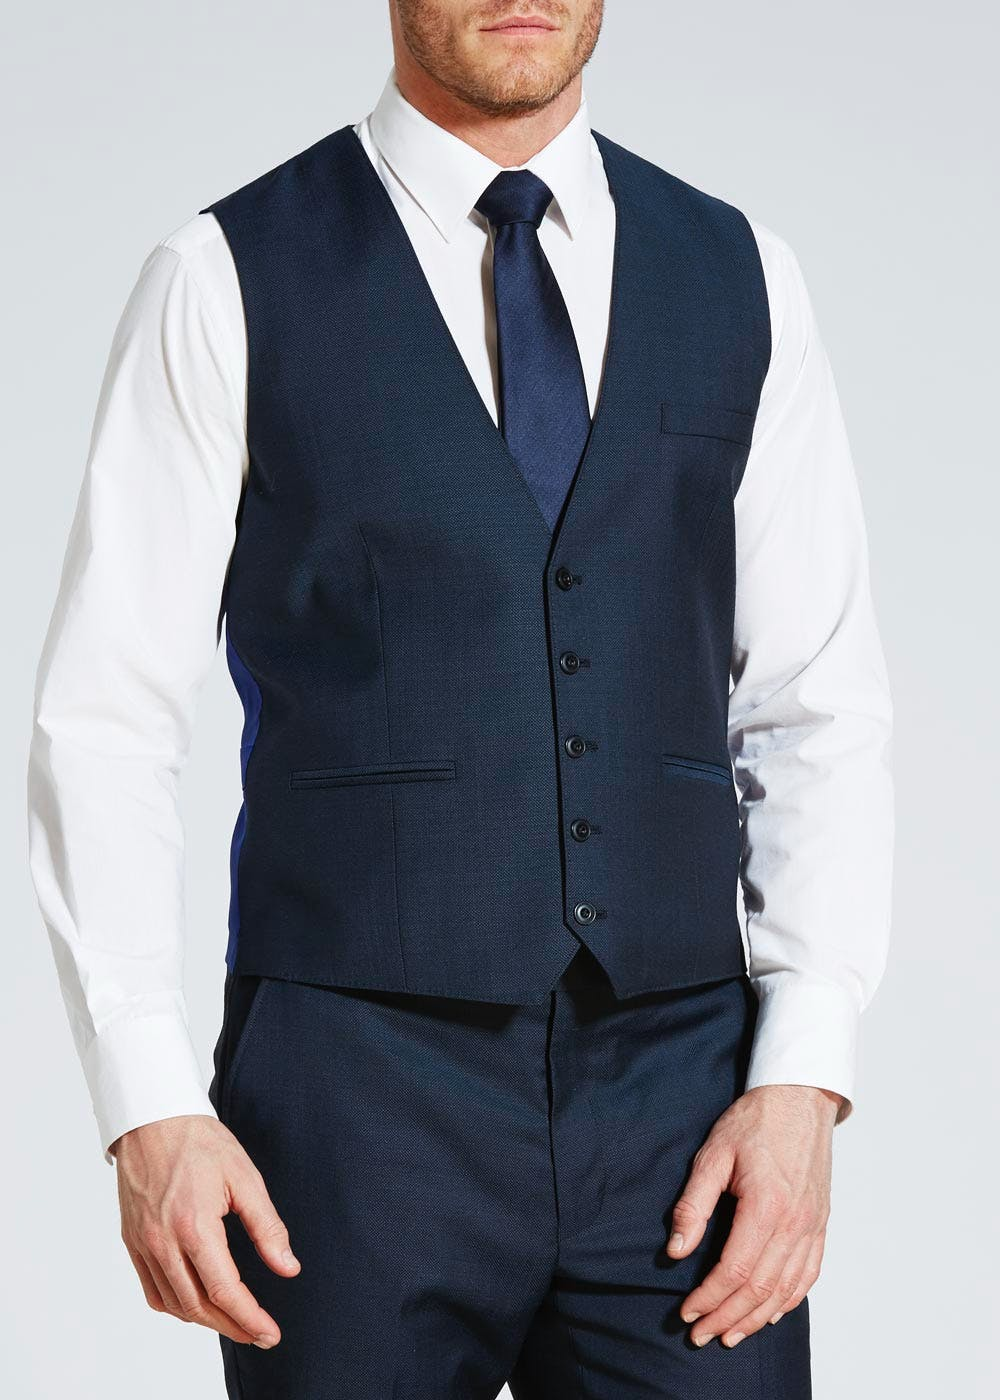 To say a suit is a wardrobe staple is a bit of an understatement, which is why we've got a fit, style and colour to work for everyone. Don't think of suits as just work wear, the right one will keep you looking smart at everything from meetings to date night, not to mention wedding season.